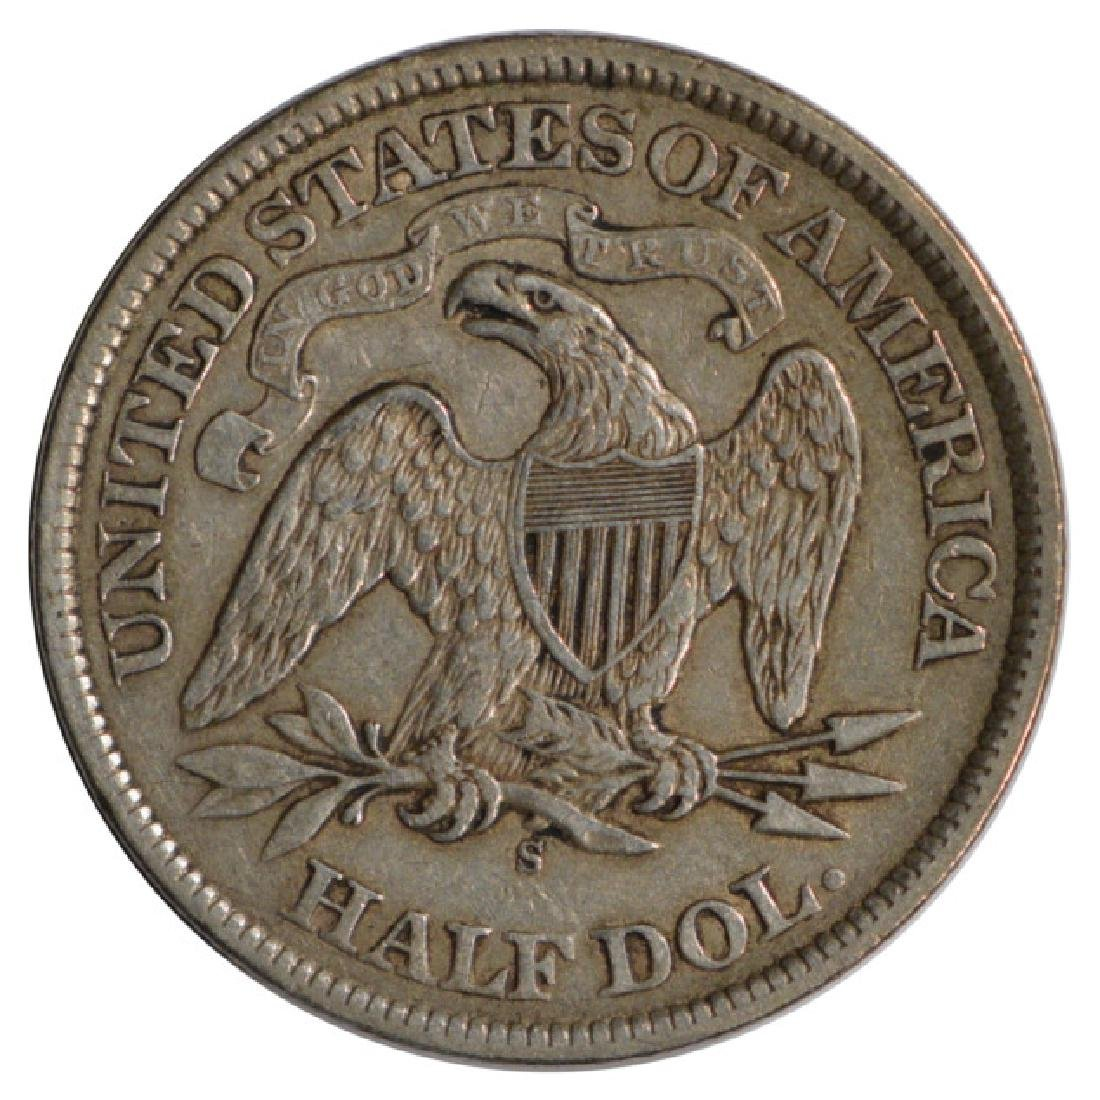 1868-S Seated Liberty Half Dollar Coin - 2